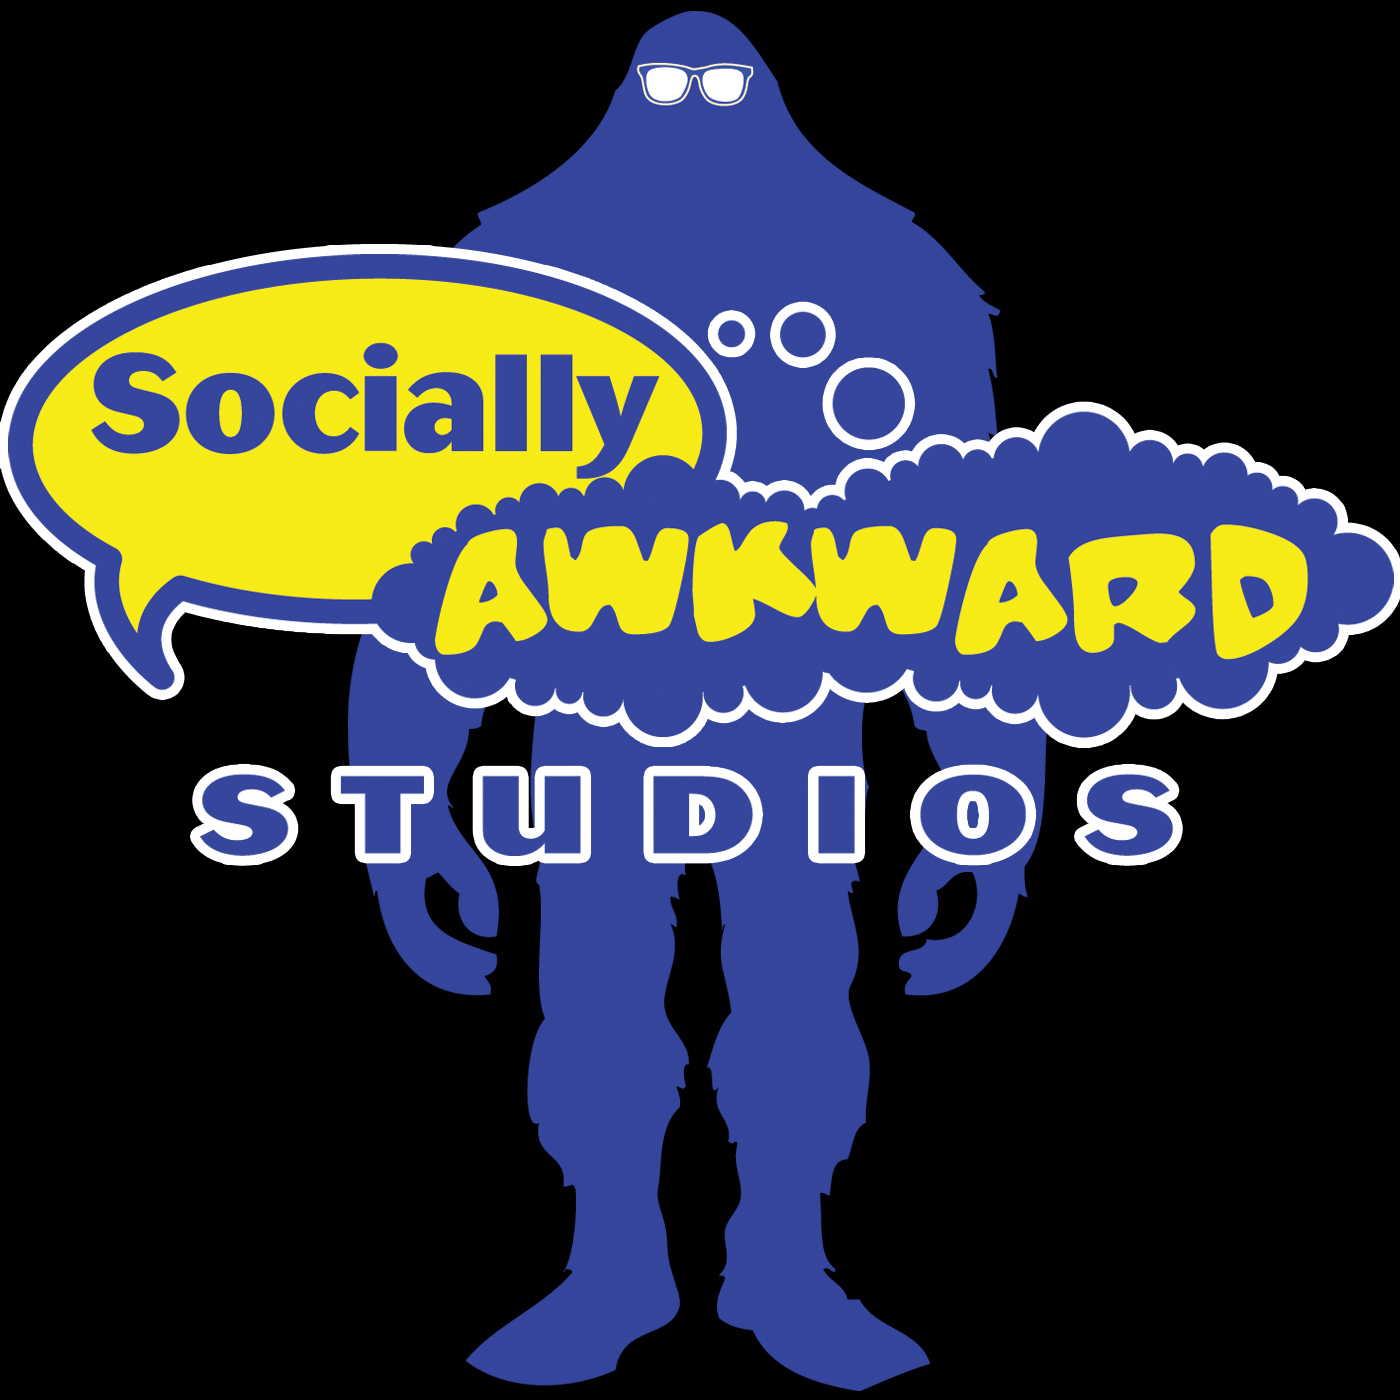 Socially Awkward Studios